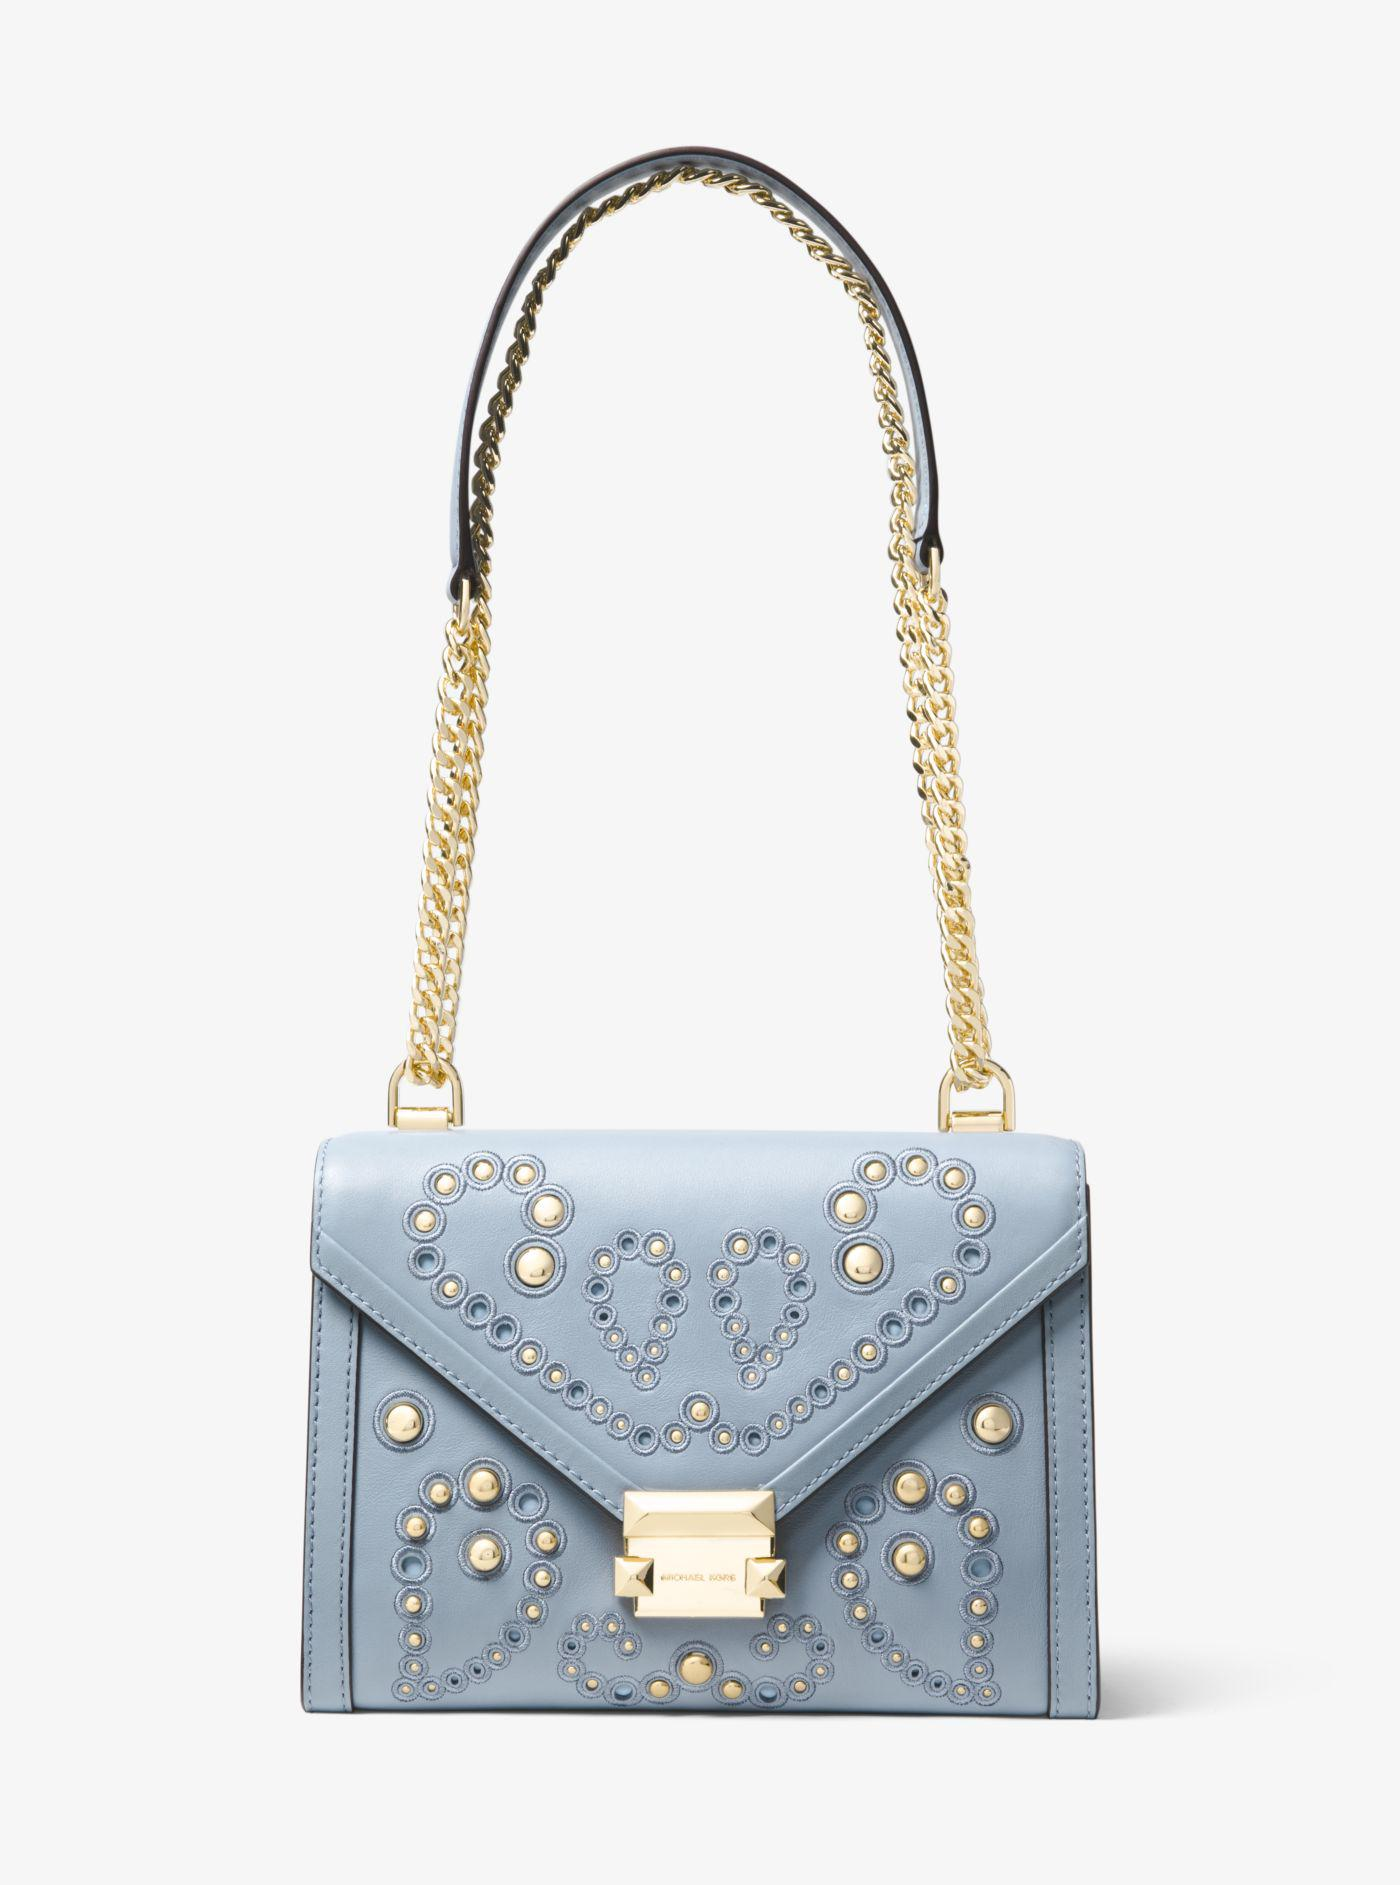 0a927e0a64e8f1 Lyst - Michael Kors Whitney Large Embellished Leather Convertible Shoulder  Bag in Blue